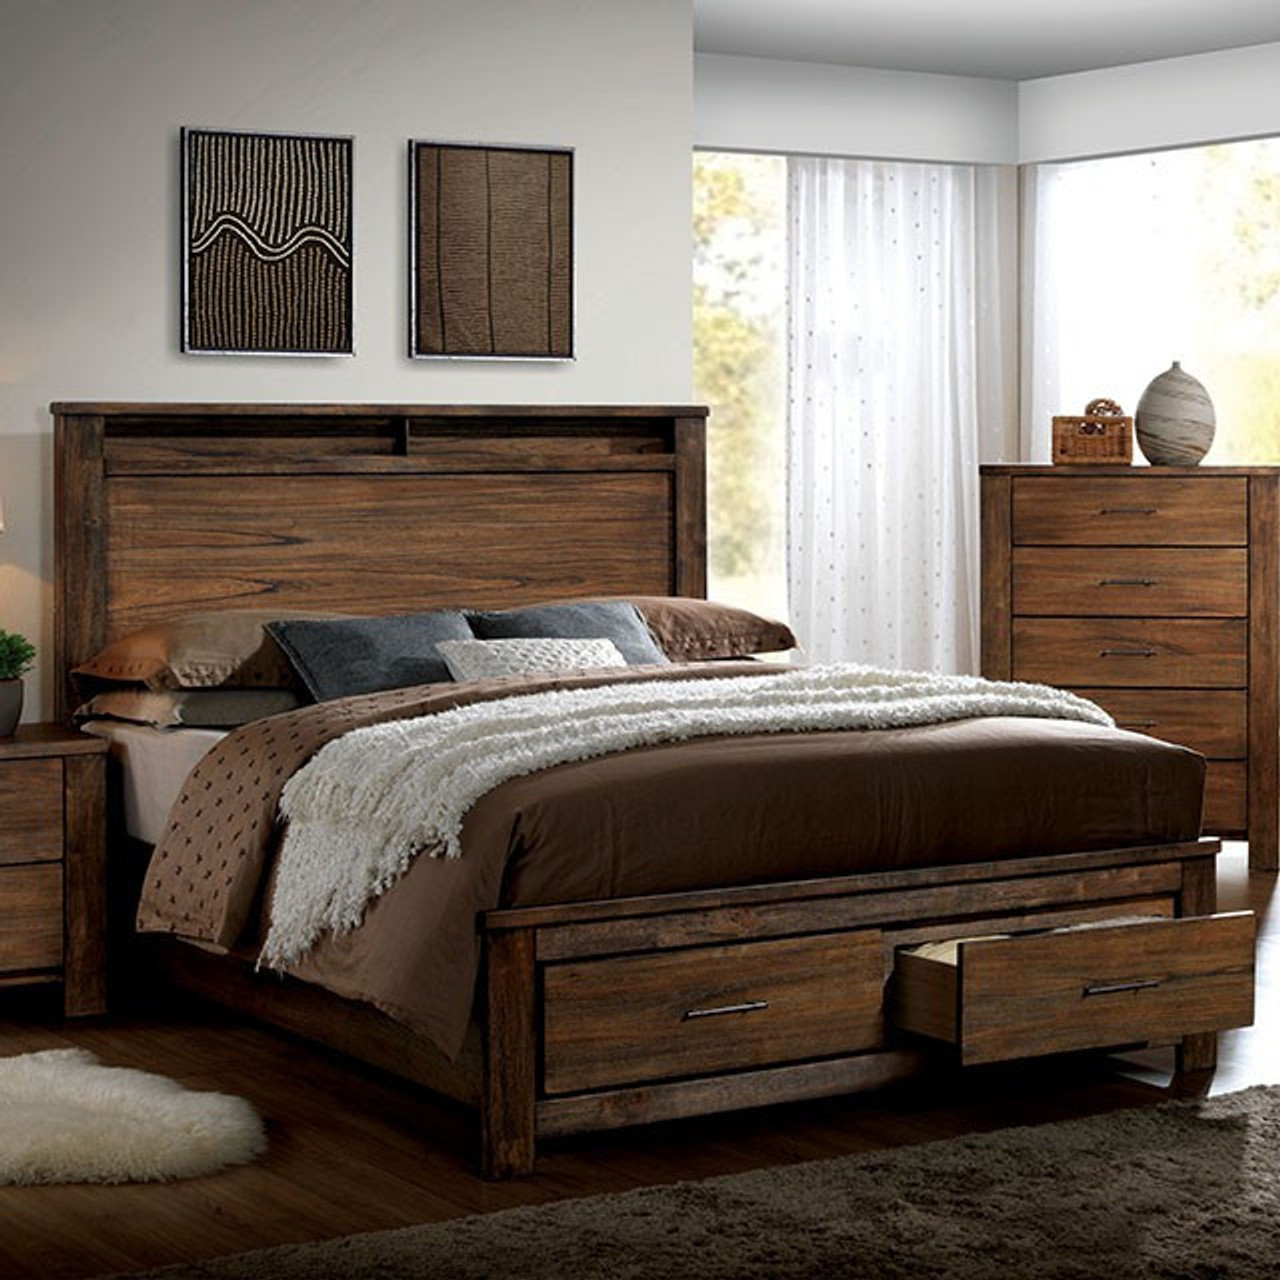 Elkton Rustic Oak Low Profile Platform Bed With Drawers